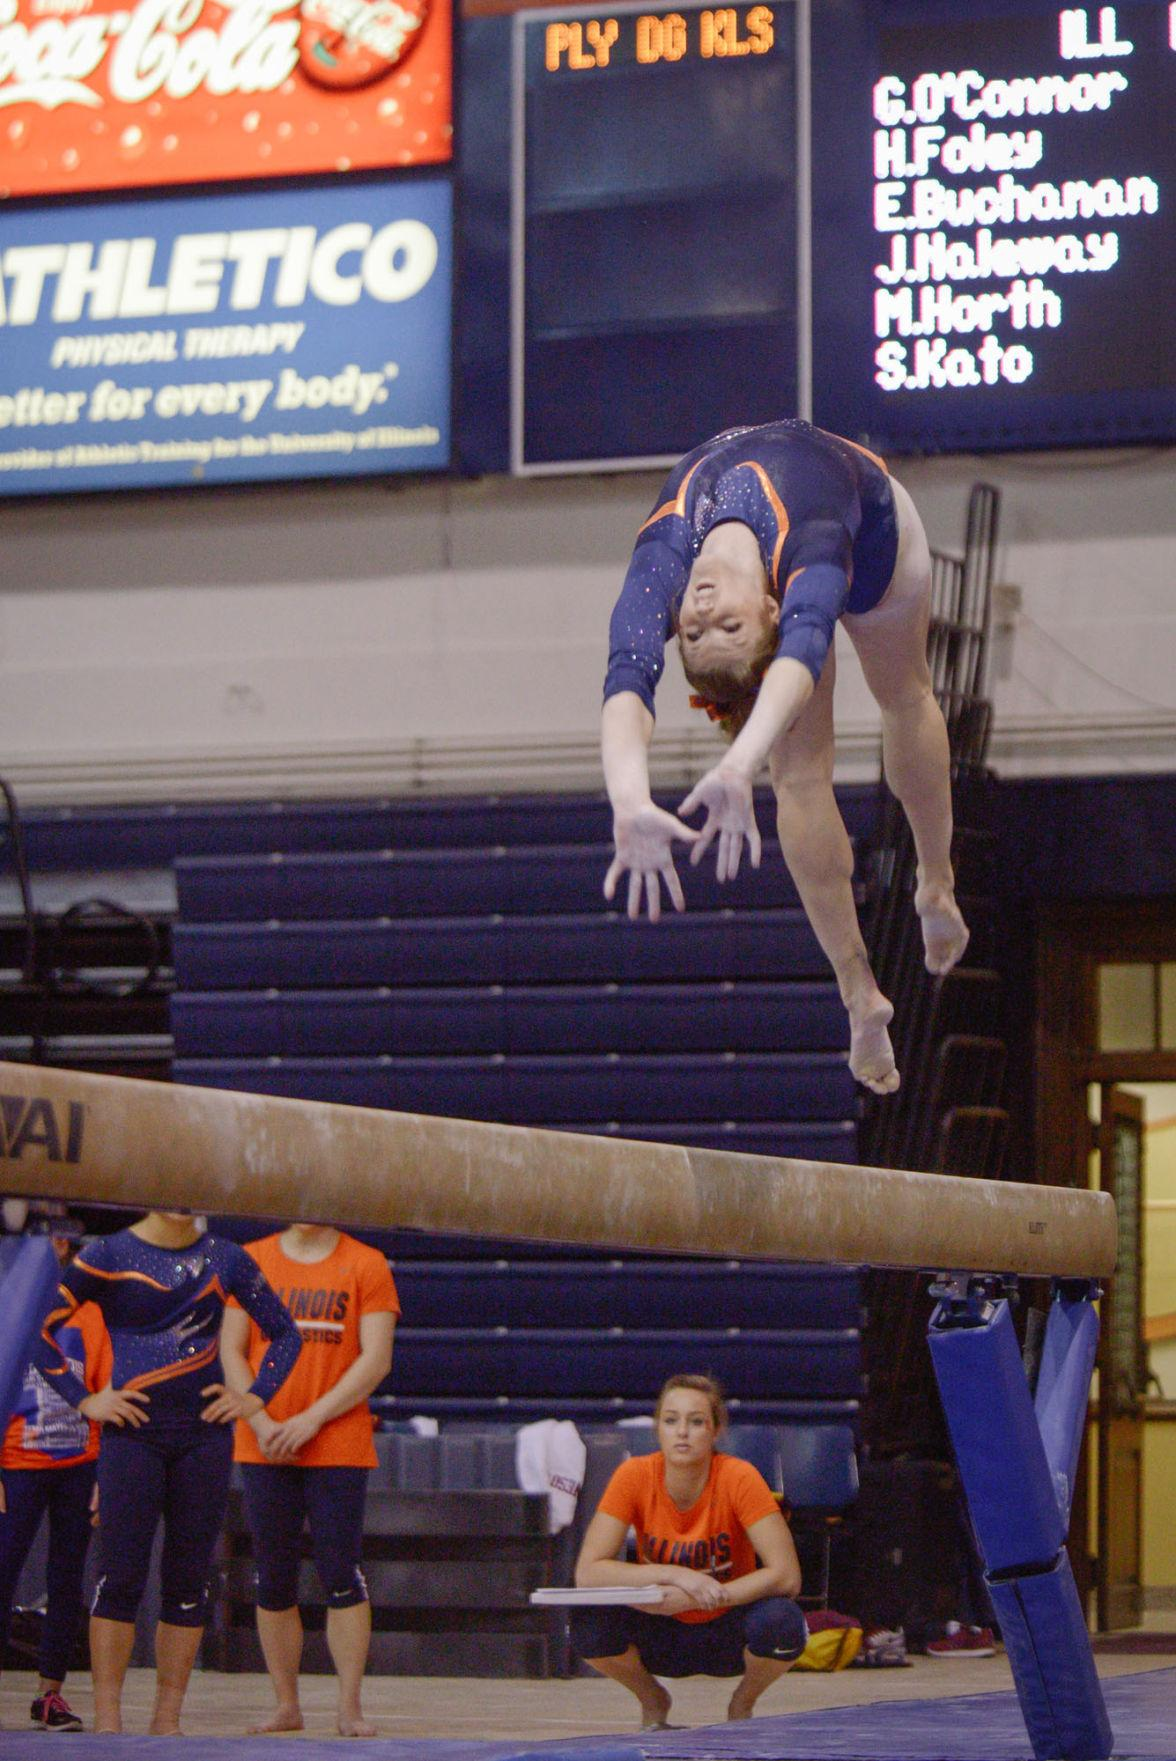 Illinois' Mary Jane Horth performs a routine on the balance beam during the meet against Minnesota at Huff Hall on February 7. The Illini won 195.775-195.375.